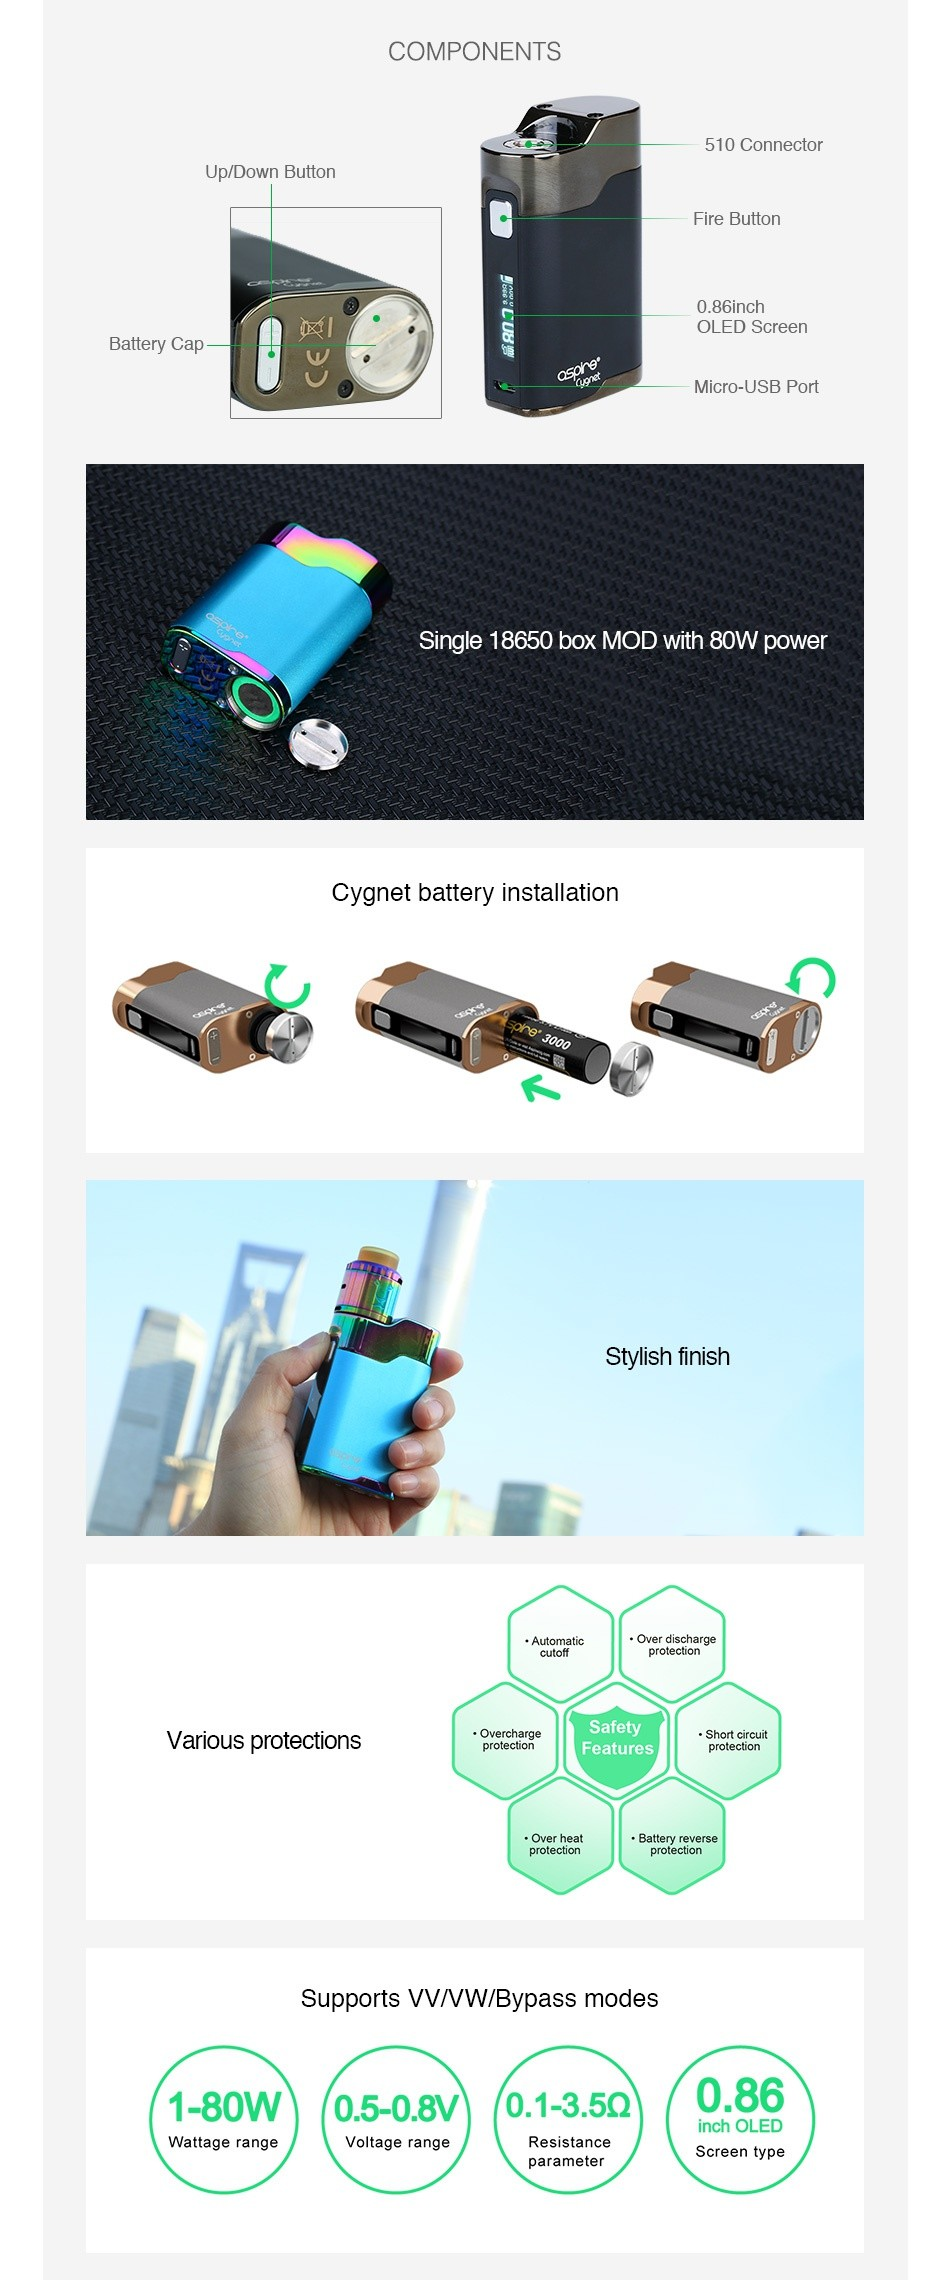 Aspire Cygnet 80W VW MOD COMPONENTS 510 Connector Up Down Button Fire Button OLED Screen Battery Cap Micro USB Porl Single 18650 box MOD with 80W power Cygnet battery installation Stylish finish cutoff Various protections Overcharge Safety Over heat Battery Supports VV W Bypass modes 180W 05080 1350 0 86 Wattage range Voltage range parameter Scrccn typc